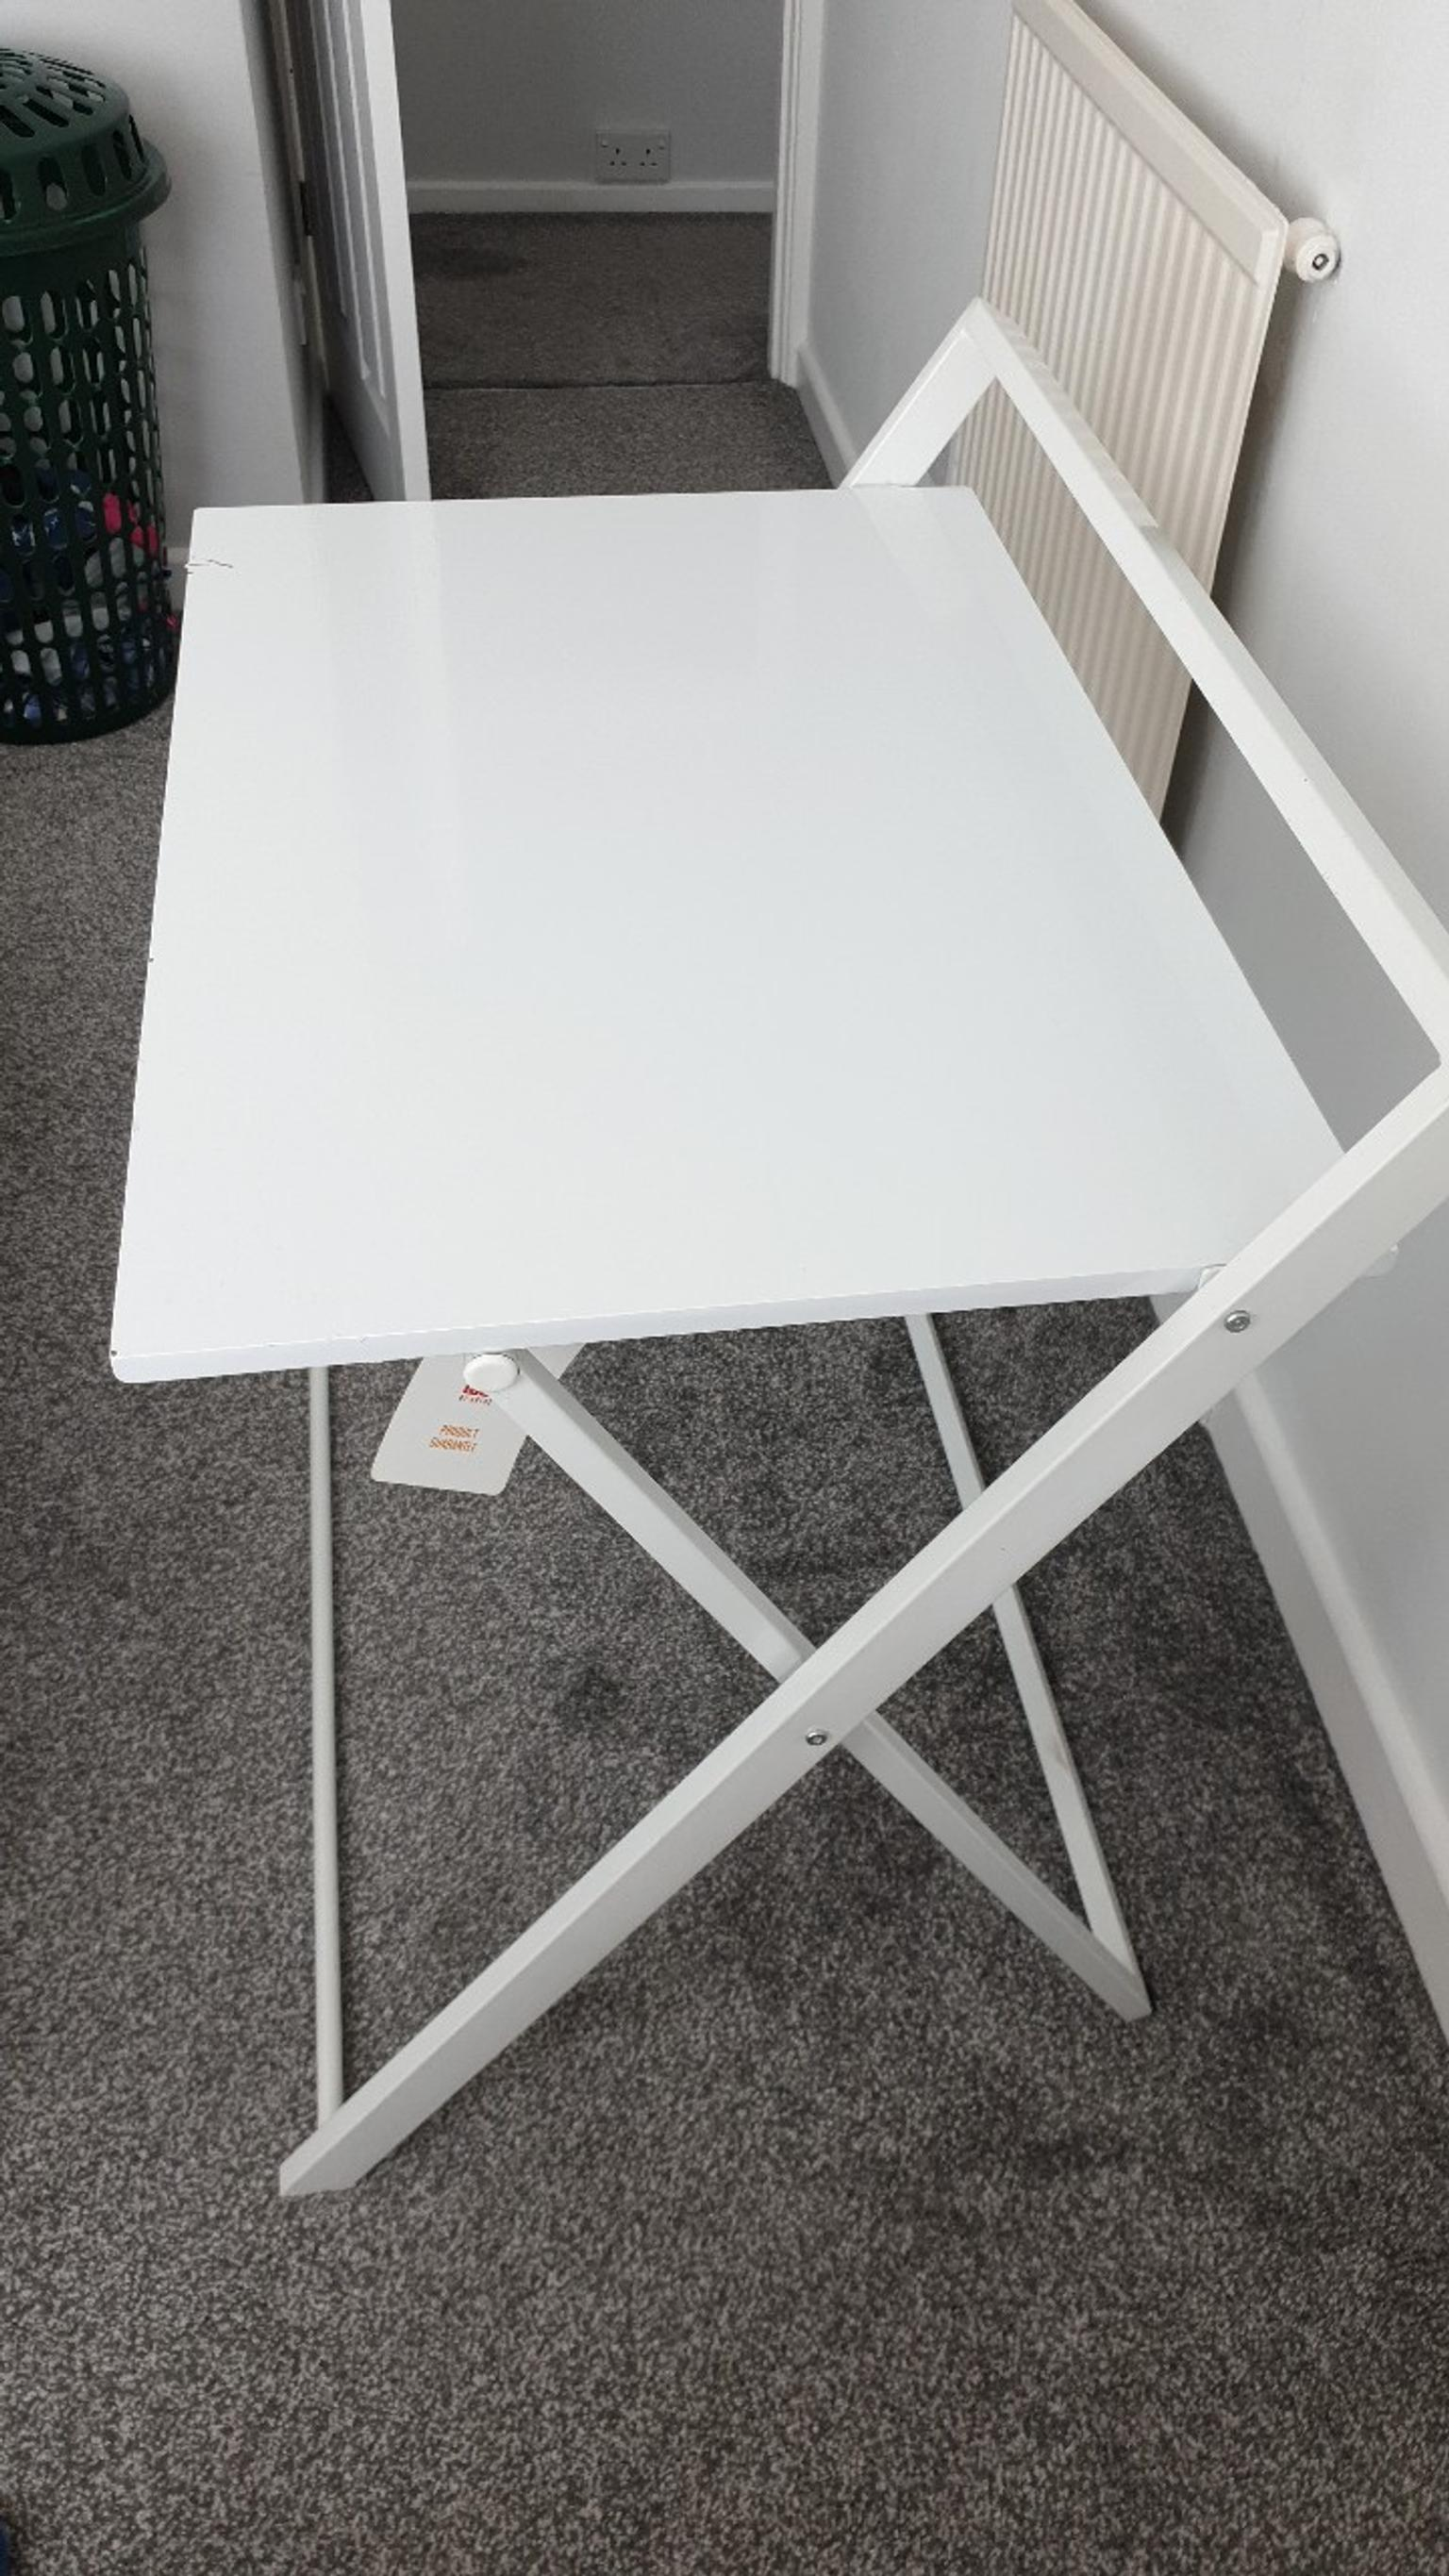 Metal Folding Table In S61 Rotherham For 5 00 For Sale Shpock